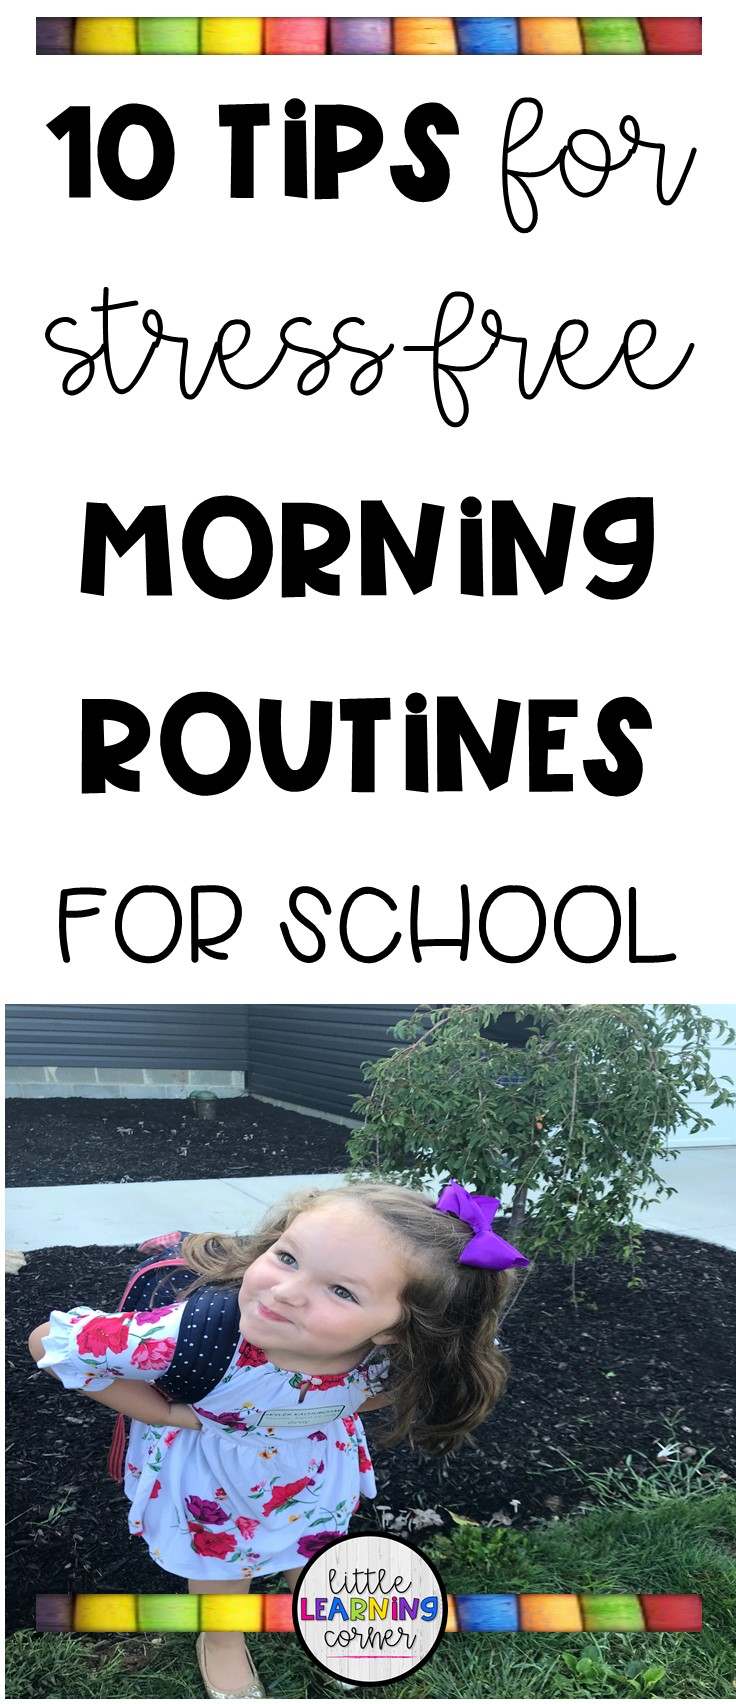 morning-routines-for-school-pin